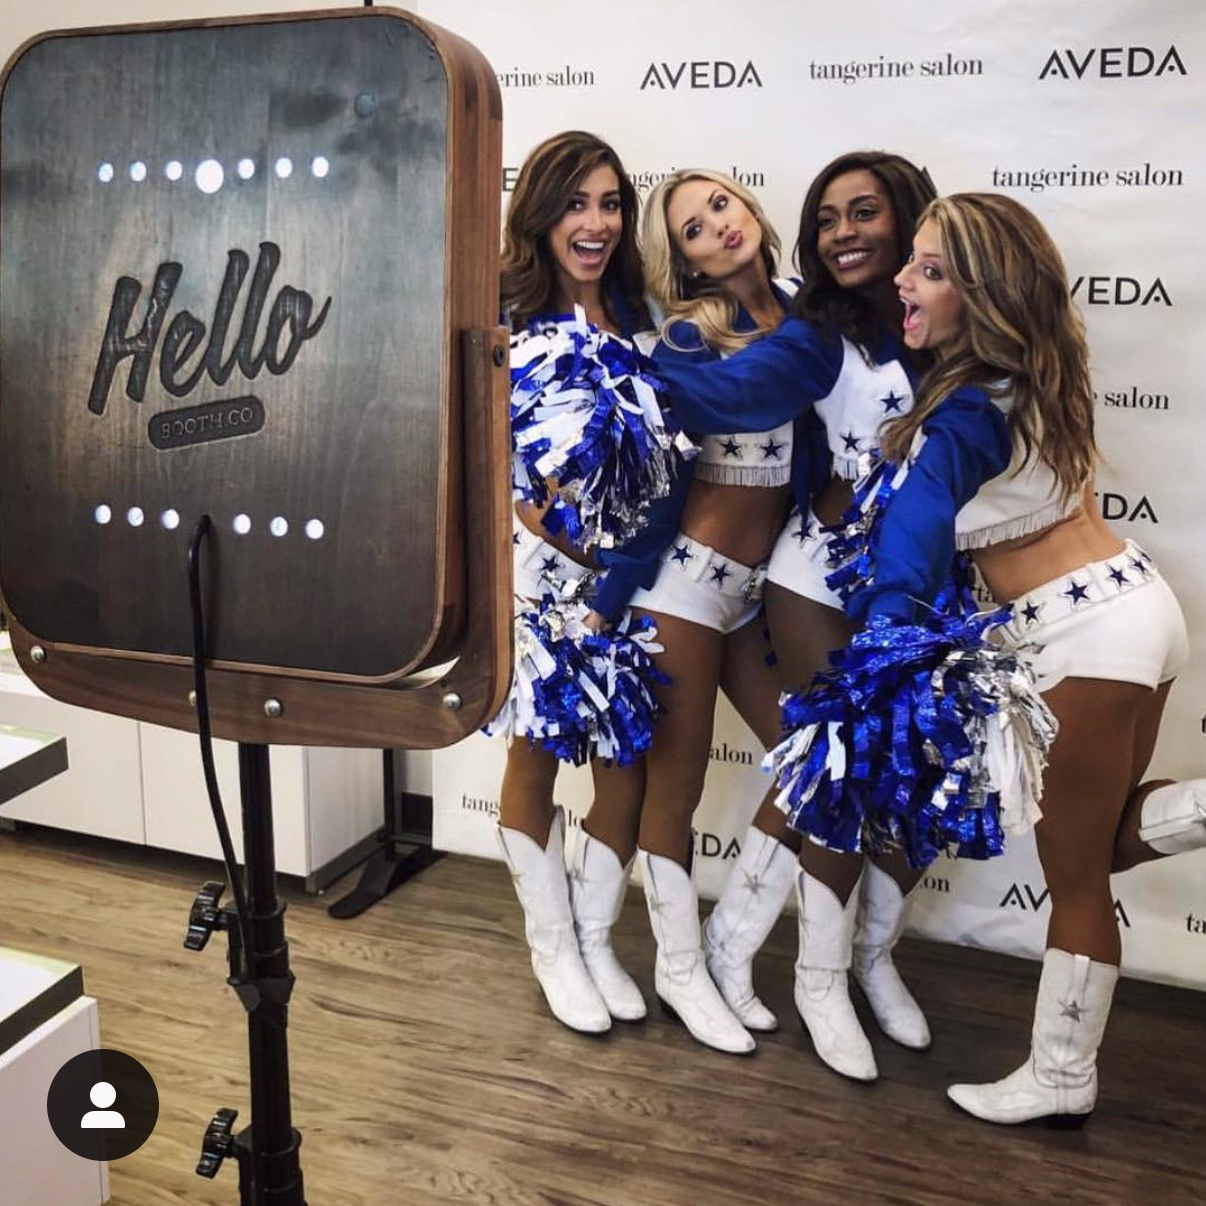 Hello Booth is the perfect Photo Booth for Dallas Party and Event Rental